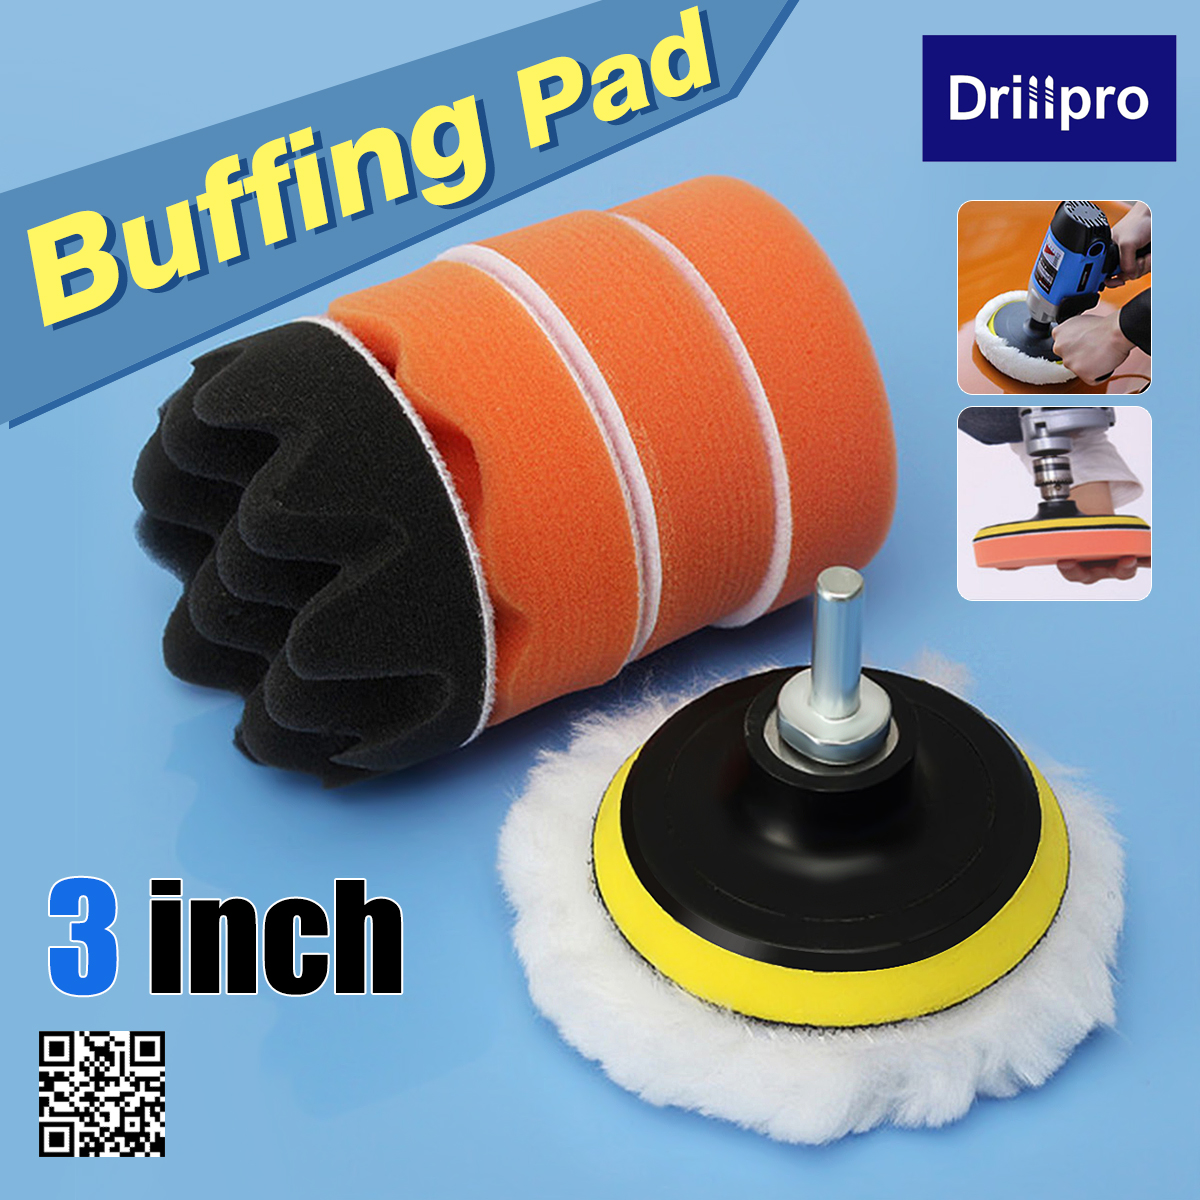 6Pcs 3 Inch Auto Car Buffing Pad Kit Compound Polishing With M10 Drill Adapter